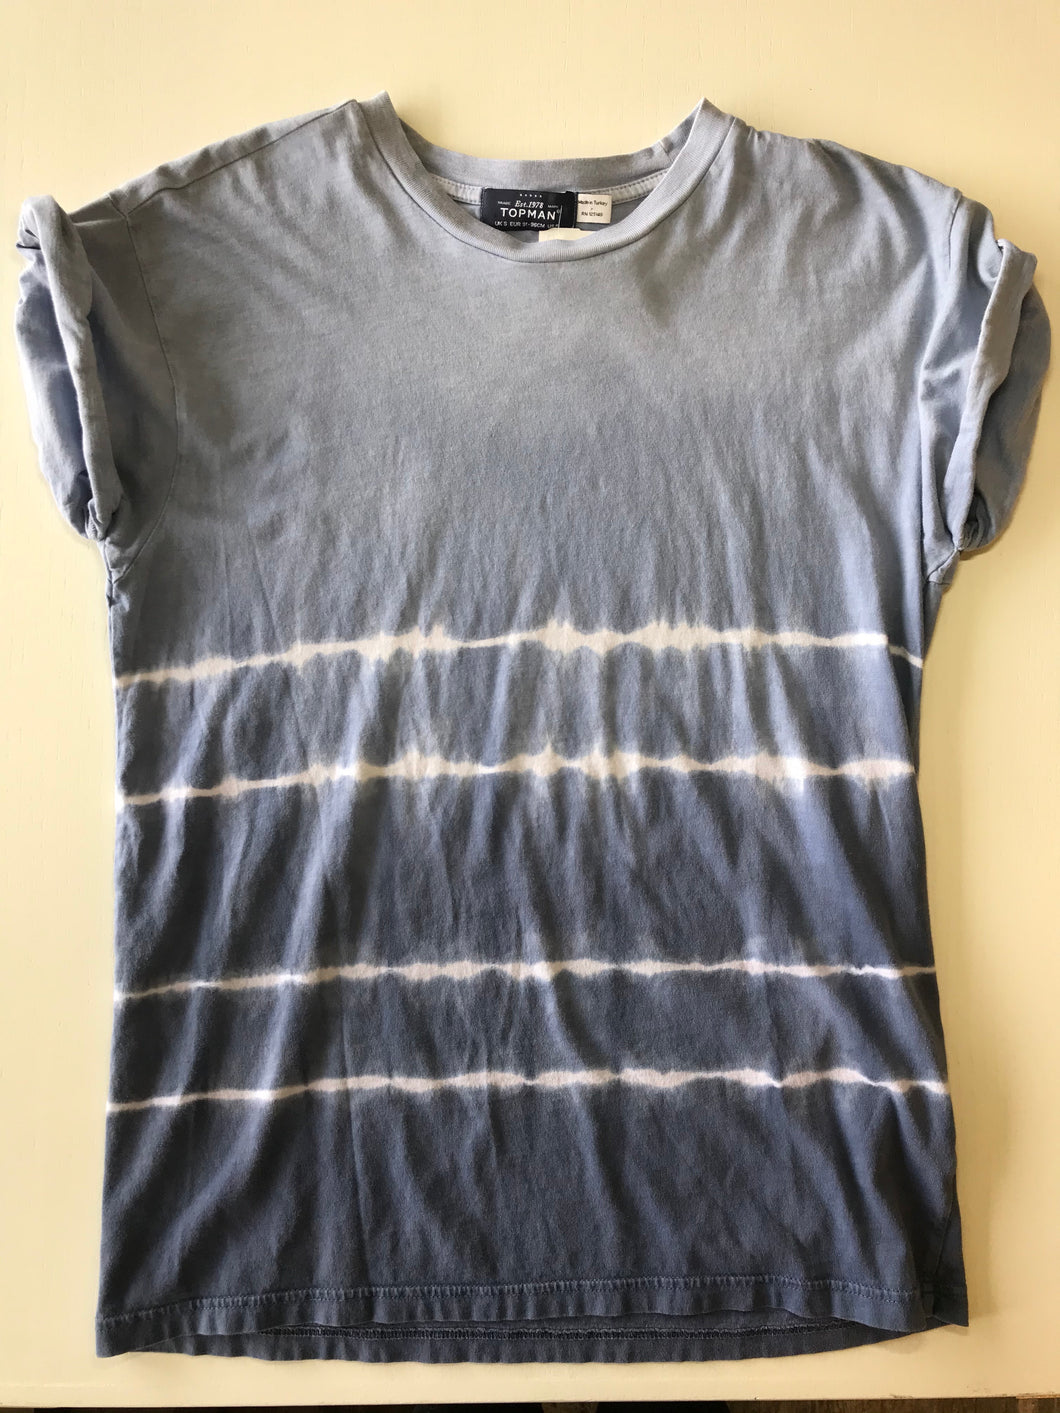 Gently Used Guys Topman Top Size S